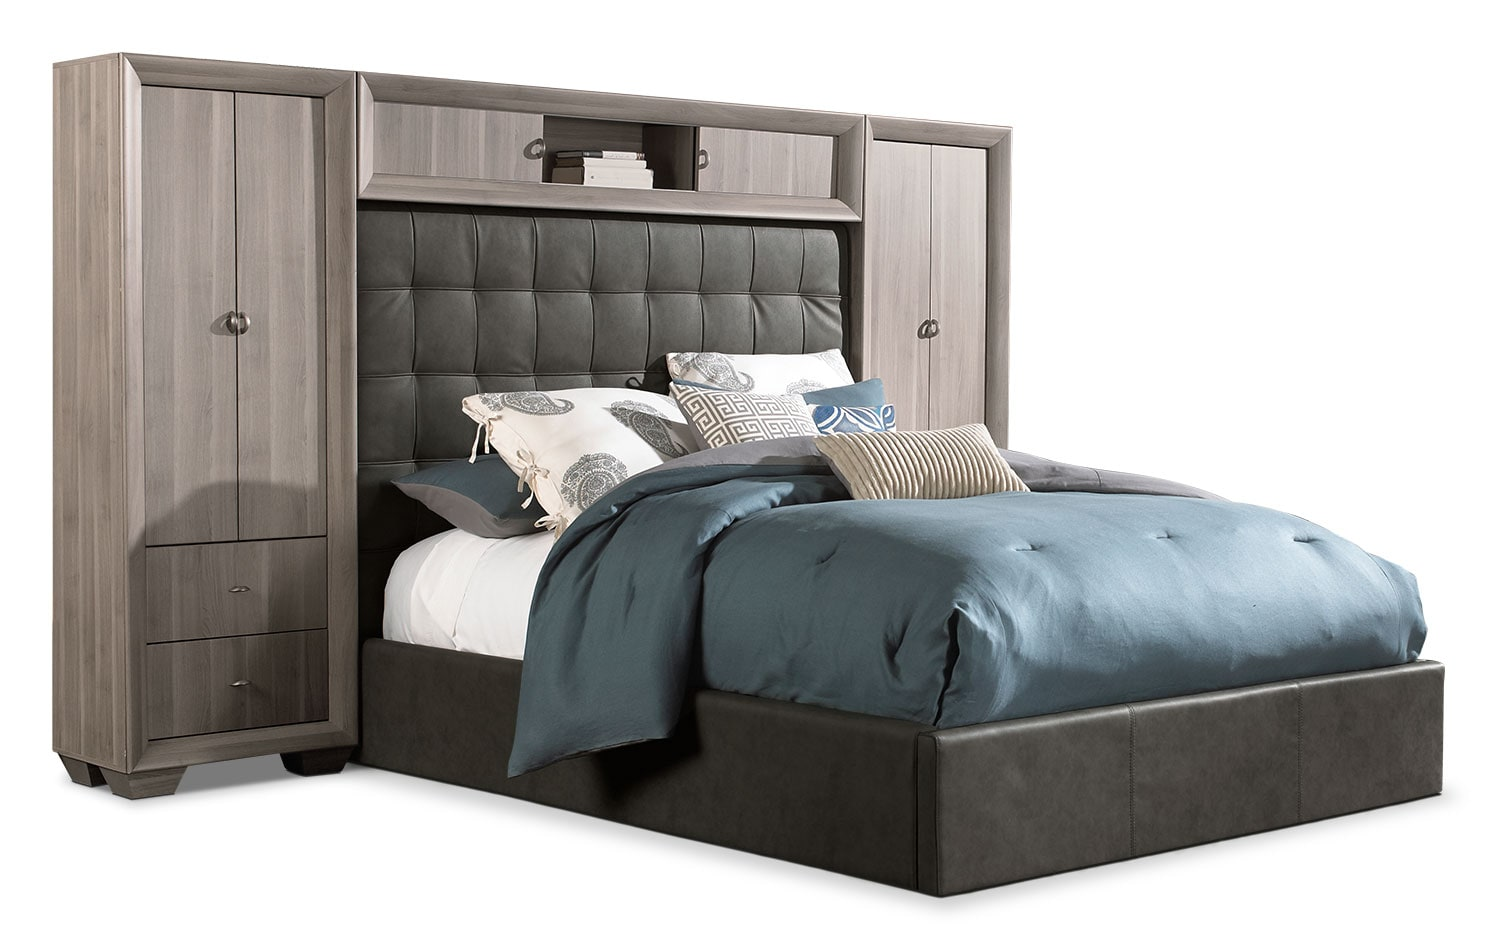 Franklin 5-Piece Queen Wallbed - Taupe